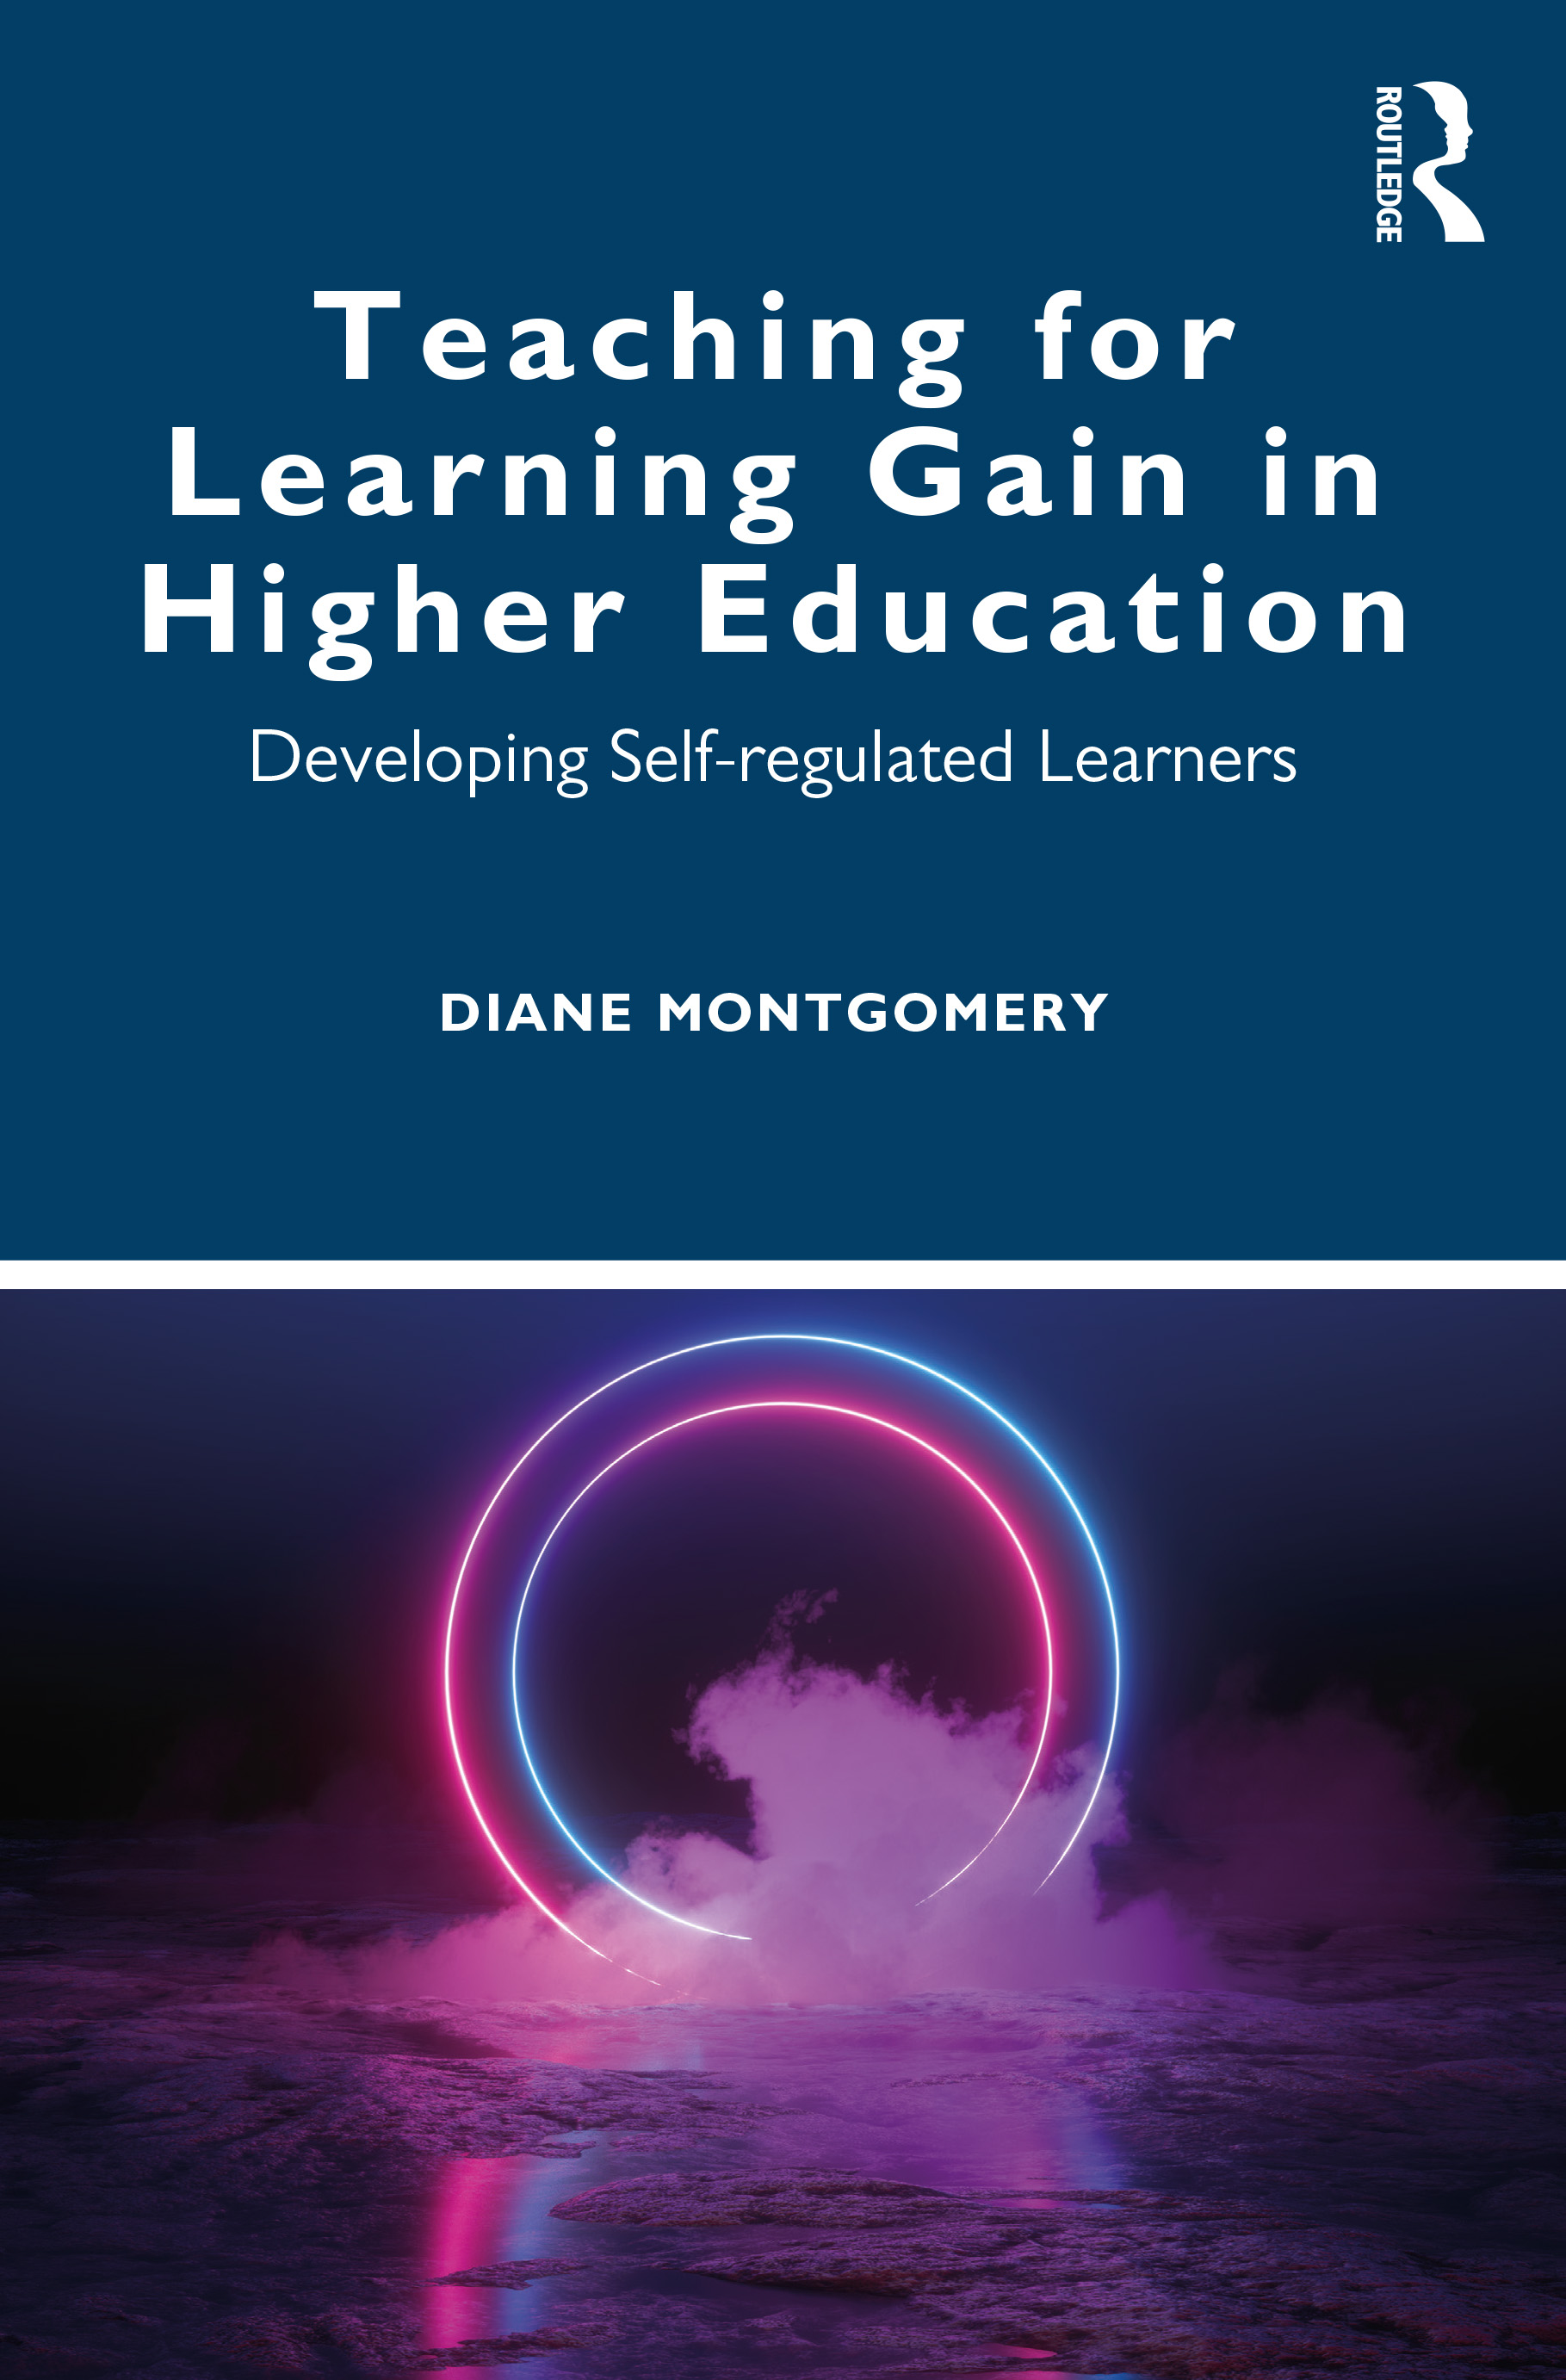 Teaching for Learning Gain in Higher Education